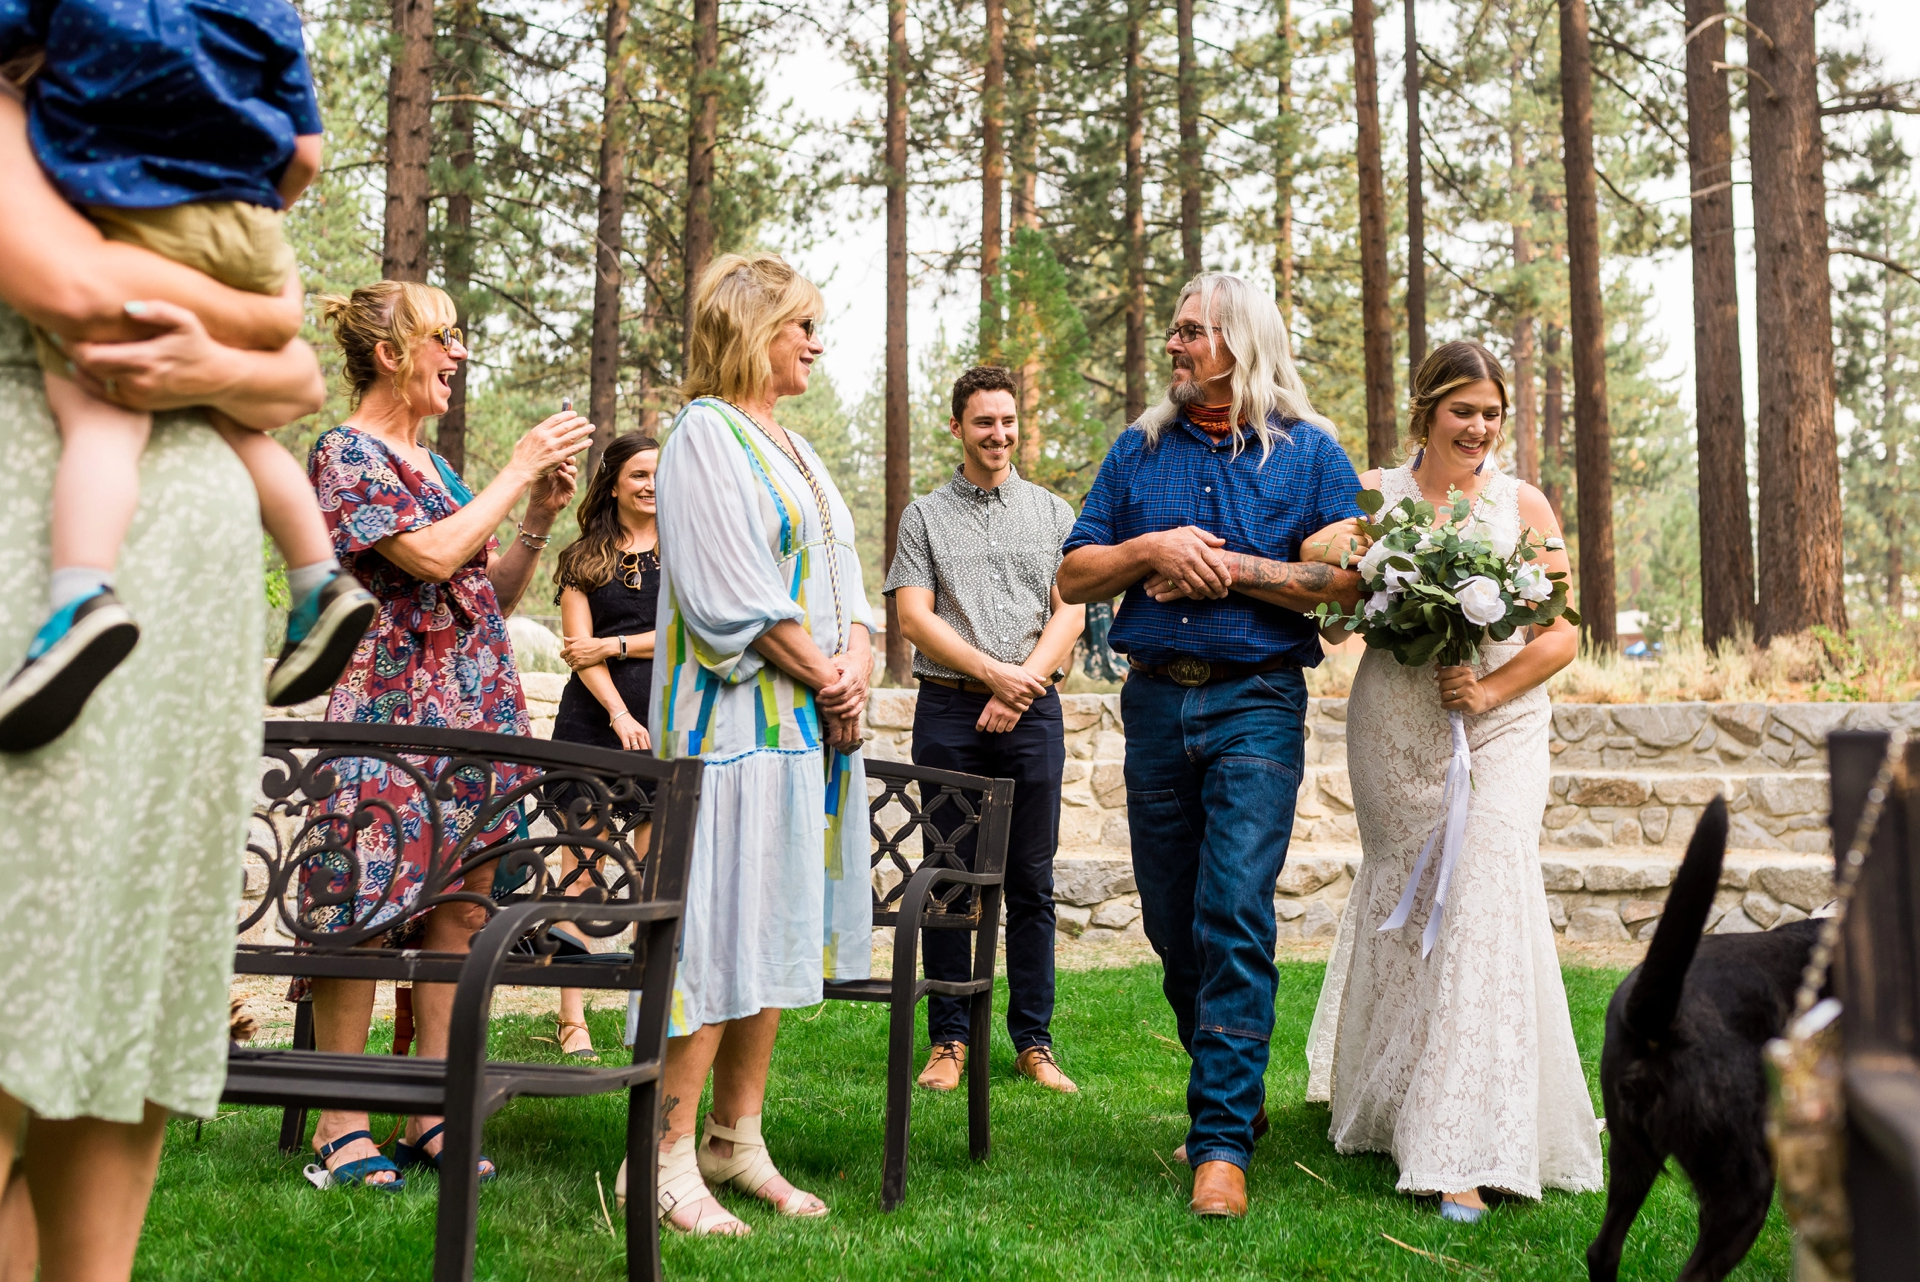 Weddings at Demonstration Garden of Lake Tahoe Community College | The bride and her father proceed down the outdoor aisle